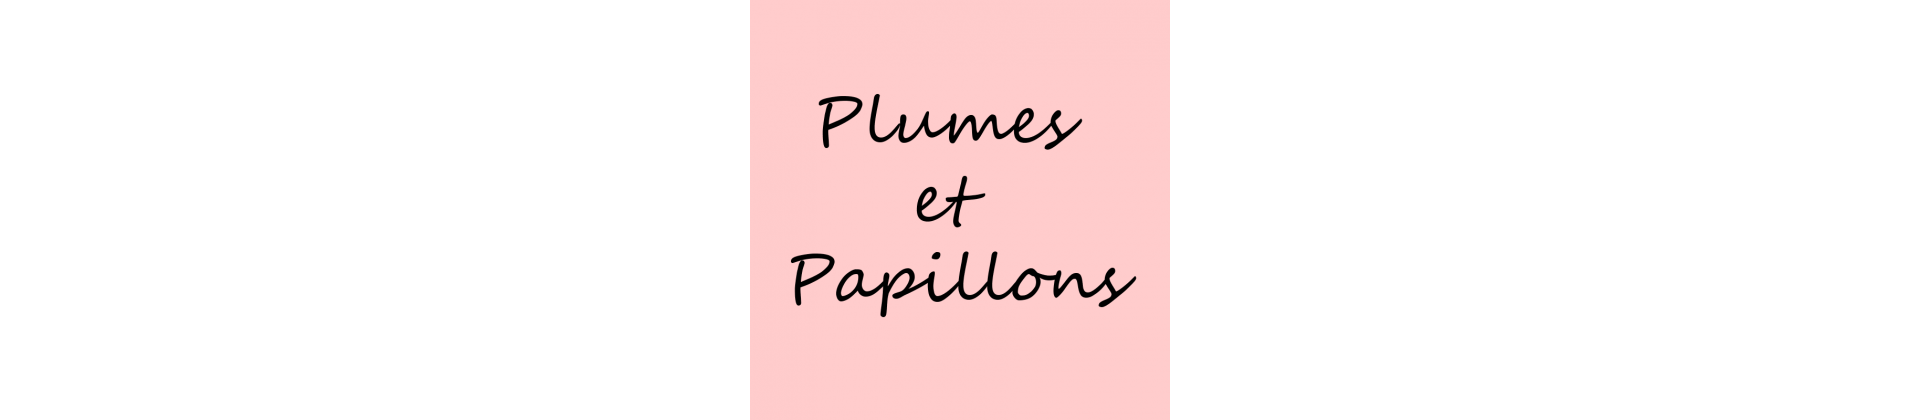 Papillons, Plumes